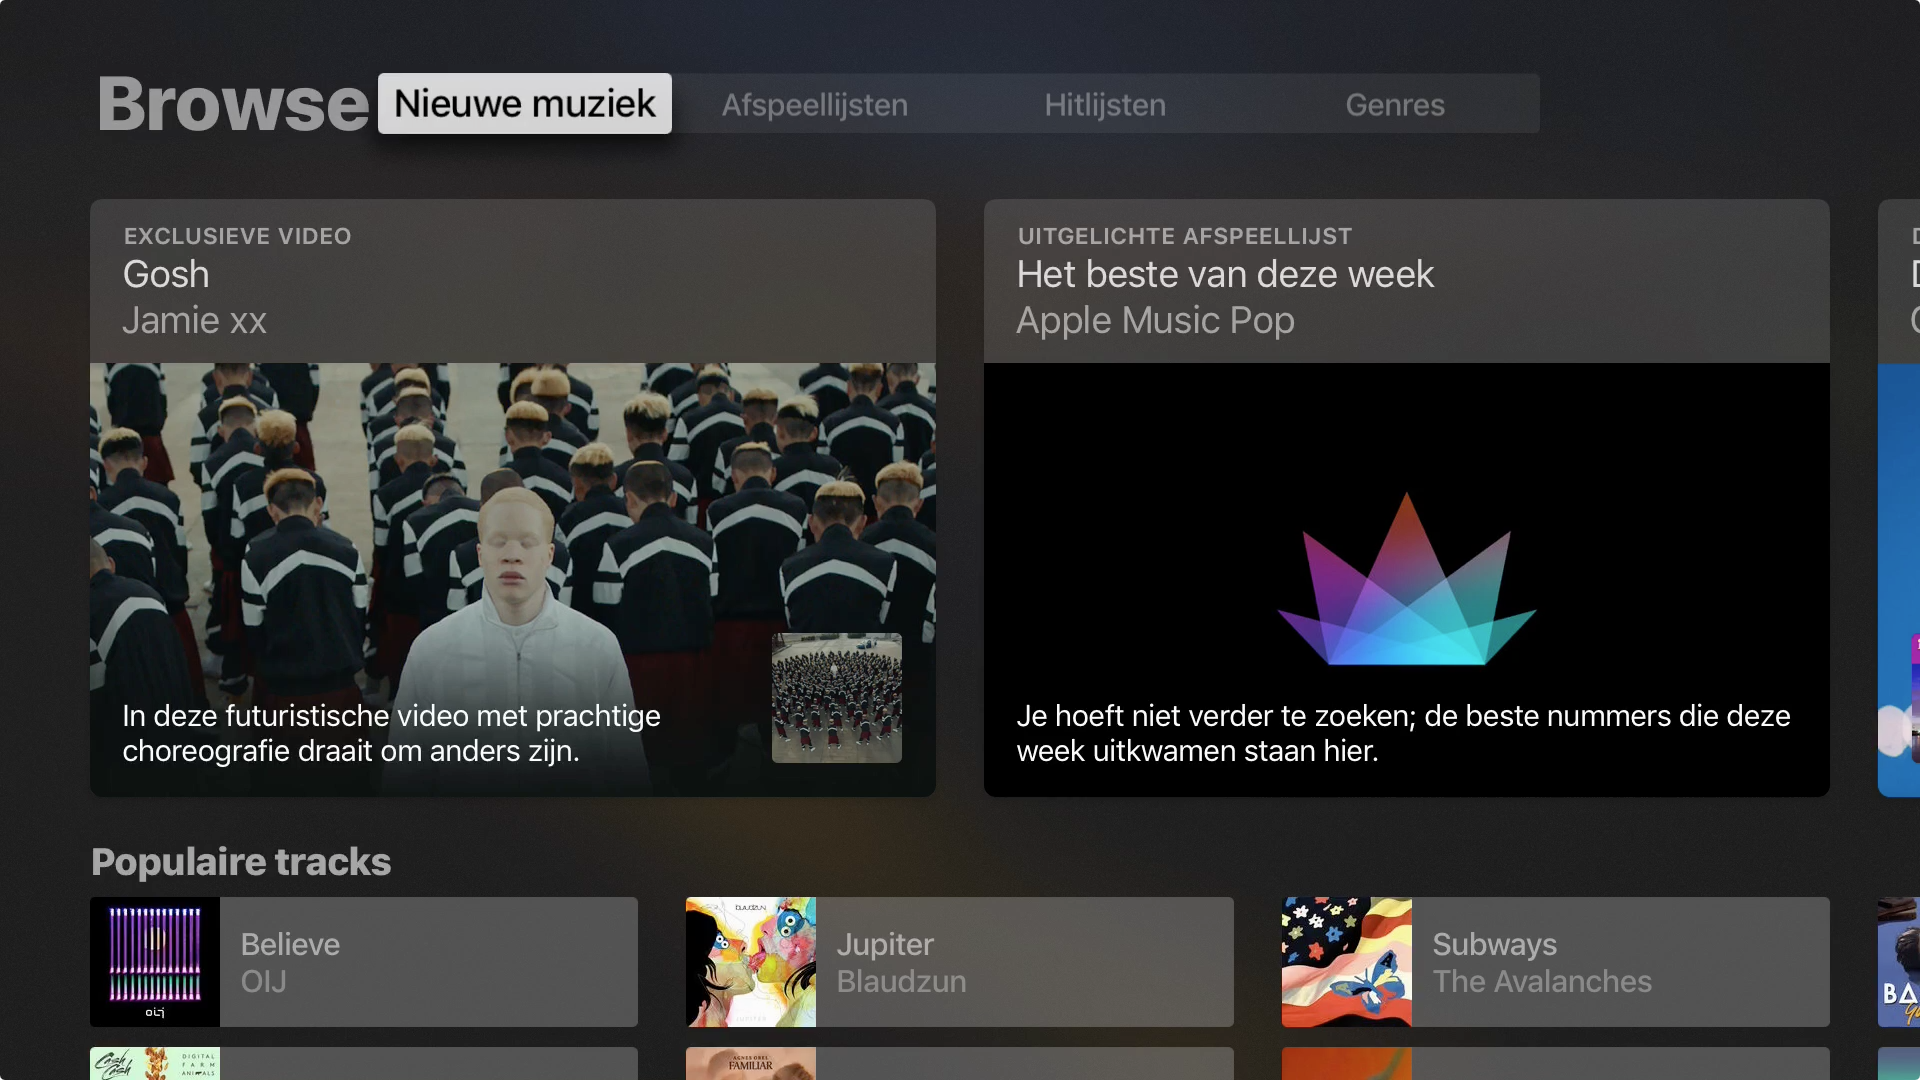 tvos10b2-nieuwofbrowse